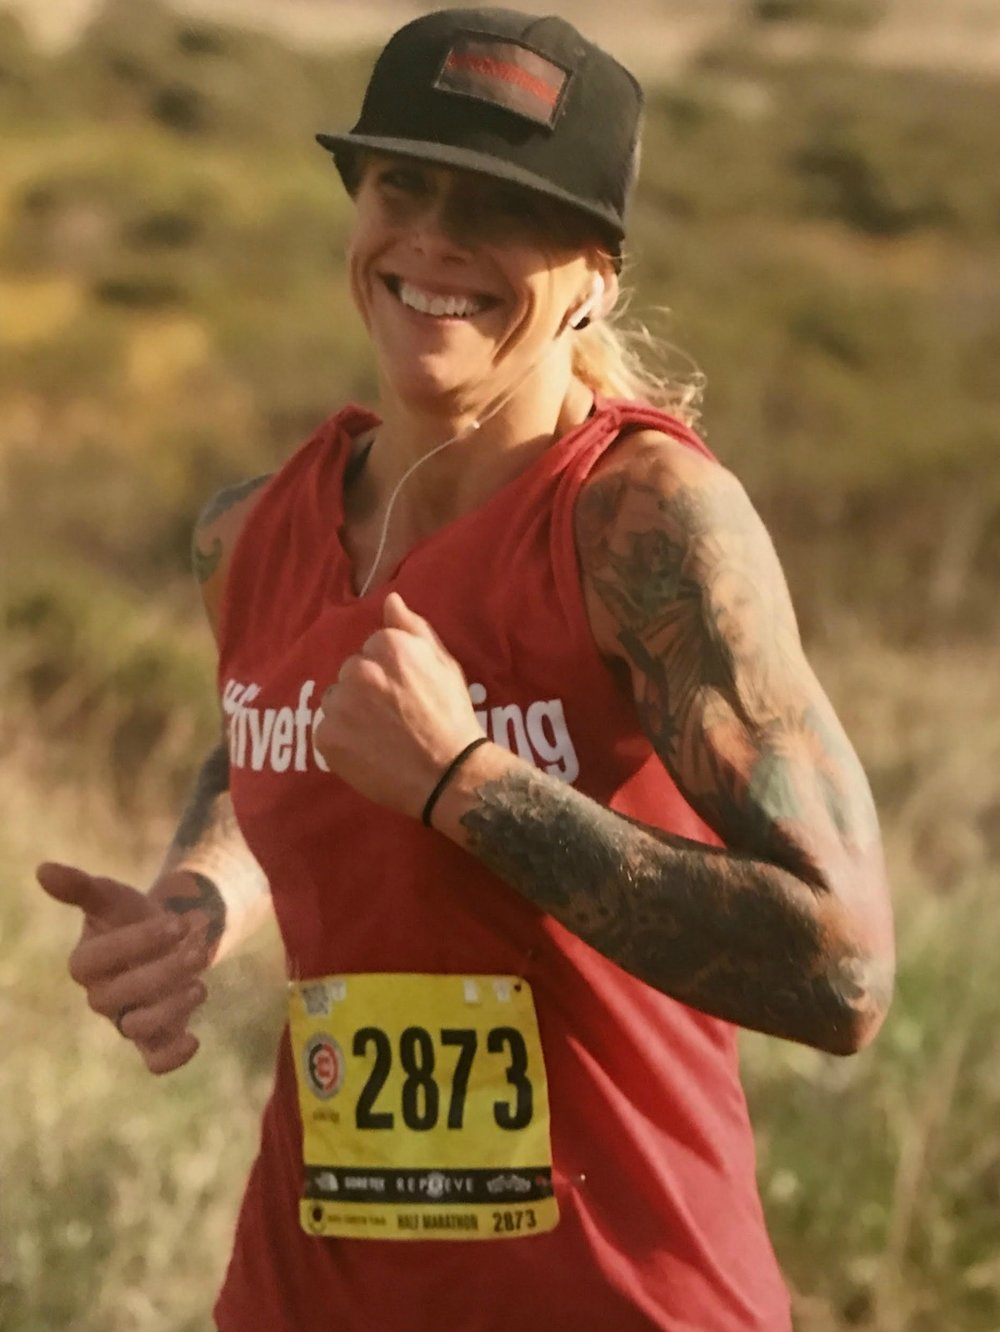 Holly  , one of our #LLSP athletes, completing her first half-marathon at the North Face Endurance Challenge. Of course, with a smile on her face, as usual.